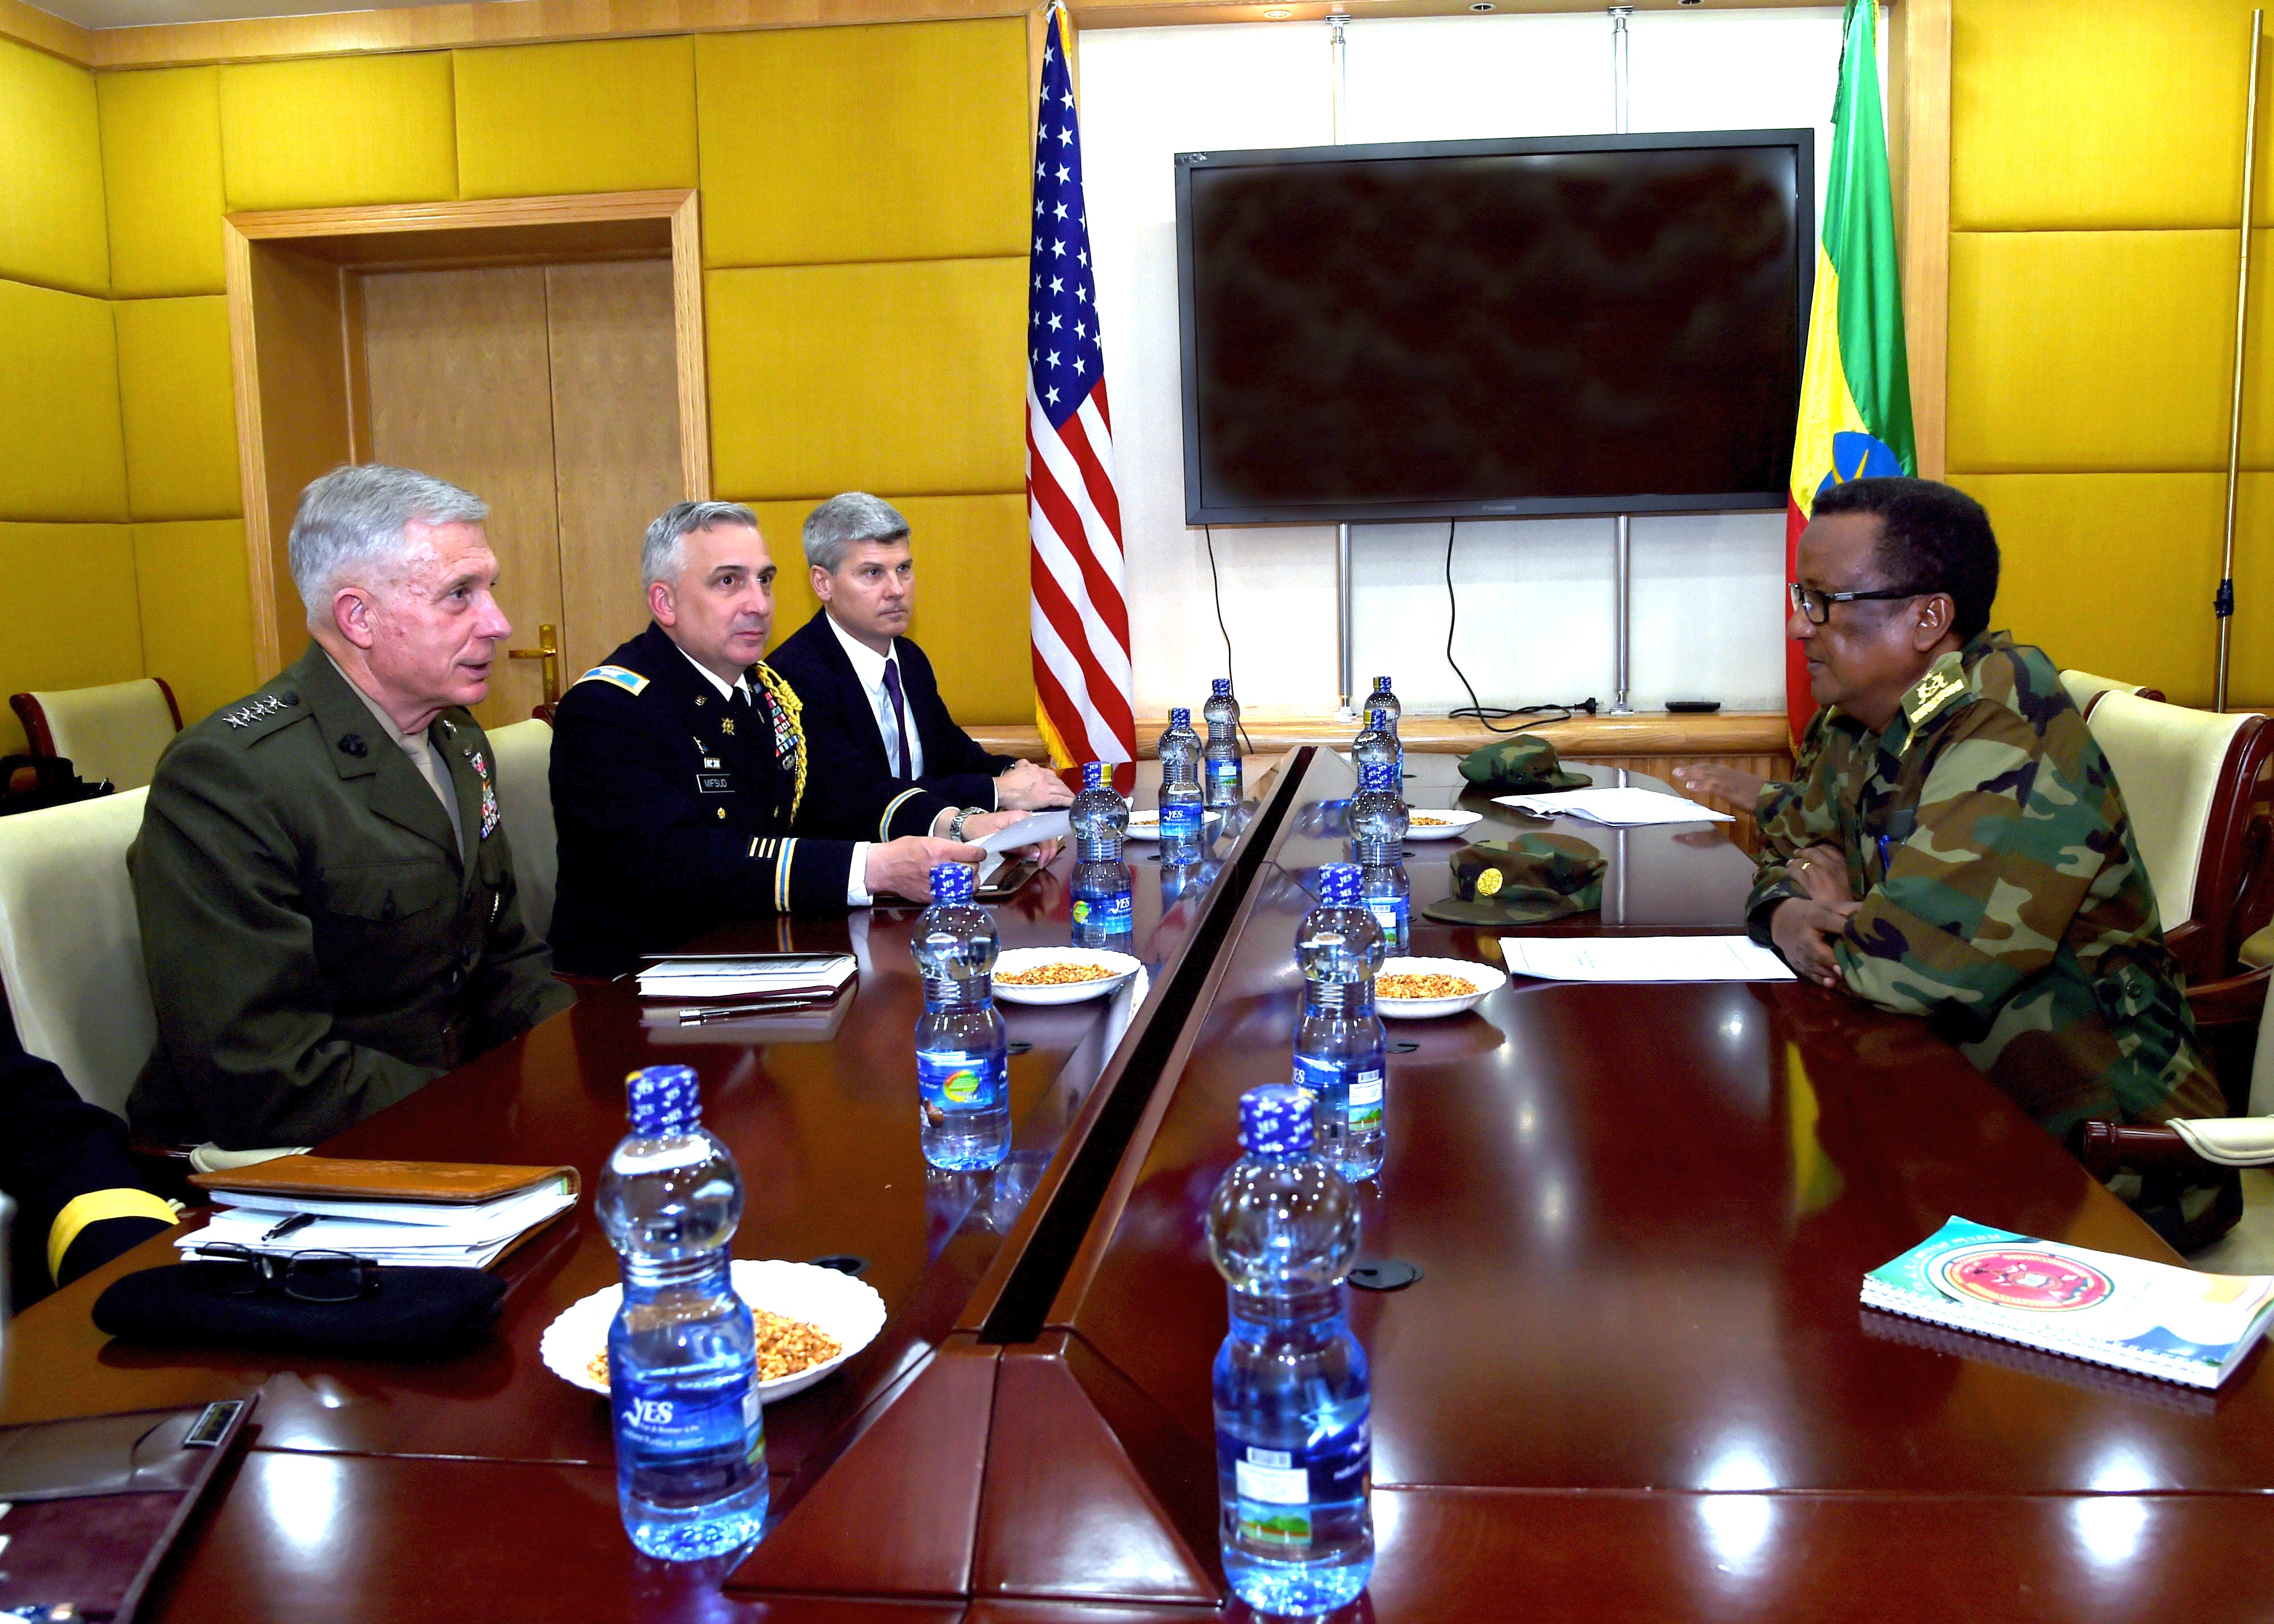 ADDIS ABABA, Ethiopia – U.S. Marine Gen. Thomas D. Waldhauser, Commander, U.S. Africa Command, meets with Ethiopian Gen. Birhanu Jula, Deputy Chief of General Staff for the Ministry of Defense for Ethiopia at a meeting in Addis Ababa, Ethiopia, Nov. 28, 2018. During his visit to Addis Ababa, Waldhauser also met with Ethiopian Minister of Defense Aisha Mohammed, U.S. Ambassador to Ethiopia Michael Raynor, and Assistant Secretary of State for the Bureau of African Affairs, Tibor P. Nagy. 